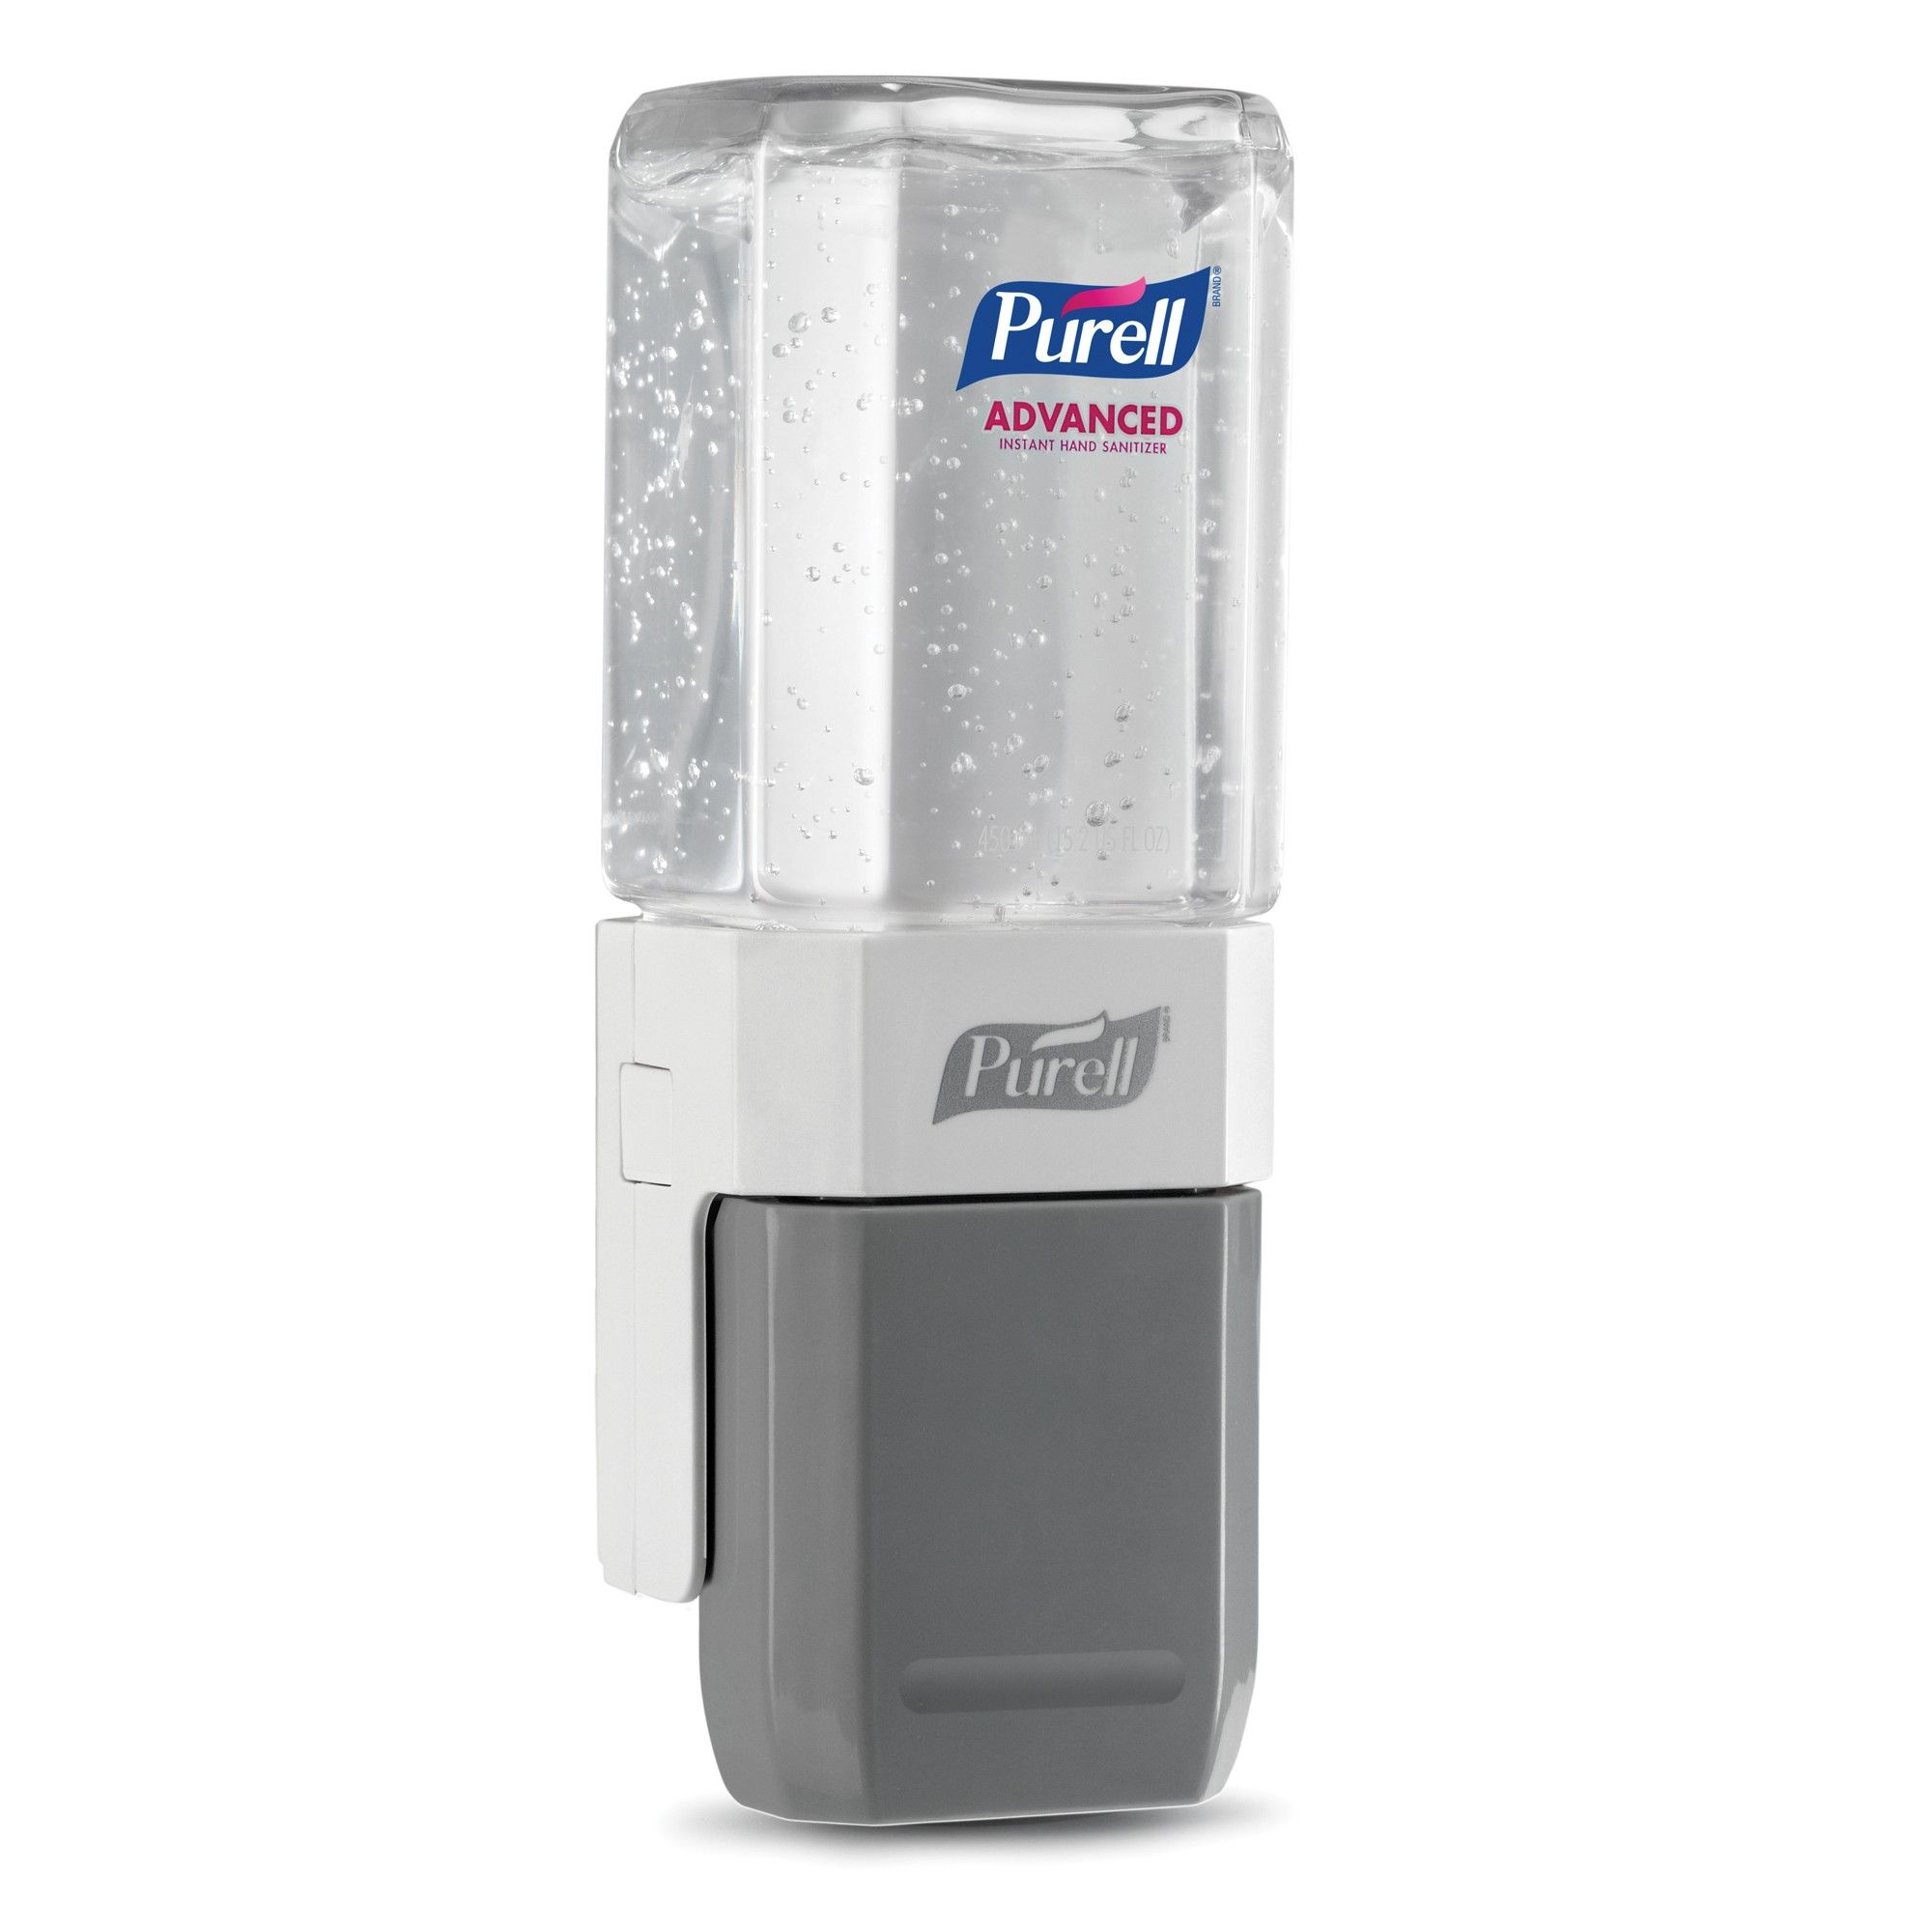 Purell Advanced Hand Sanitizer Es Starter Kit 1 Refill 1 Es